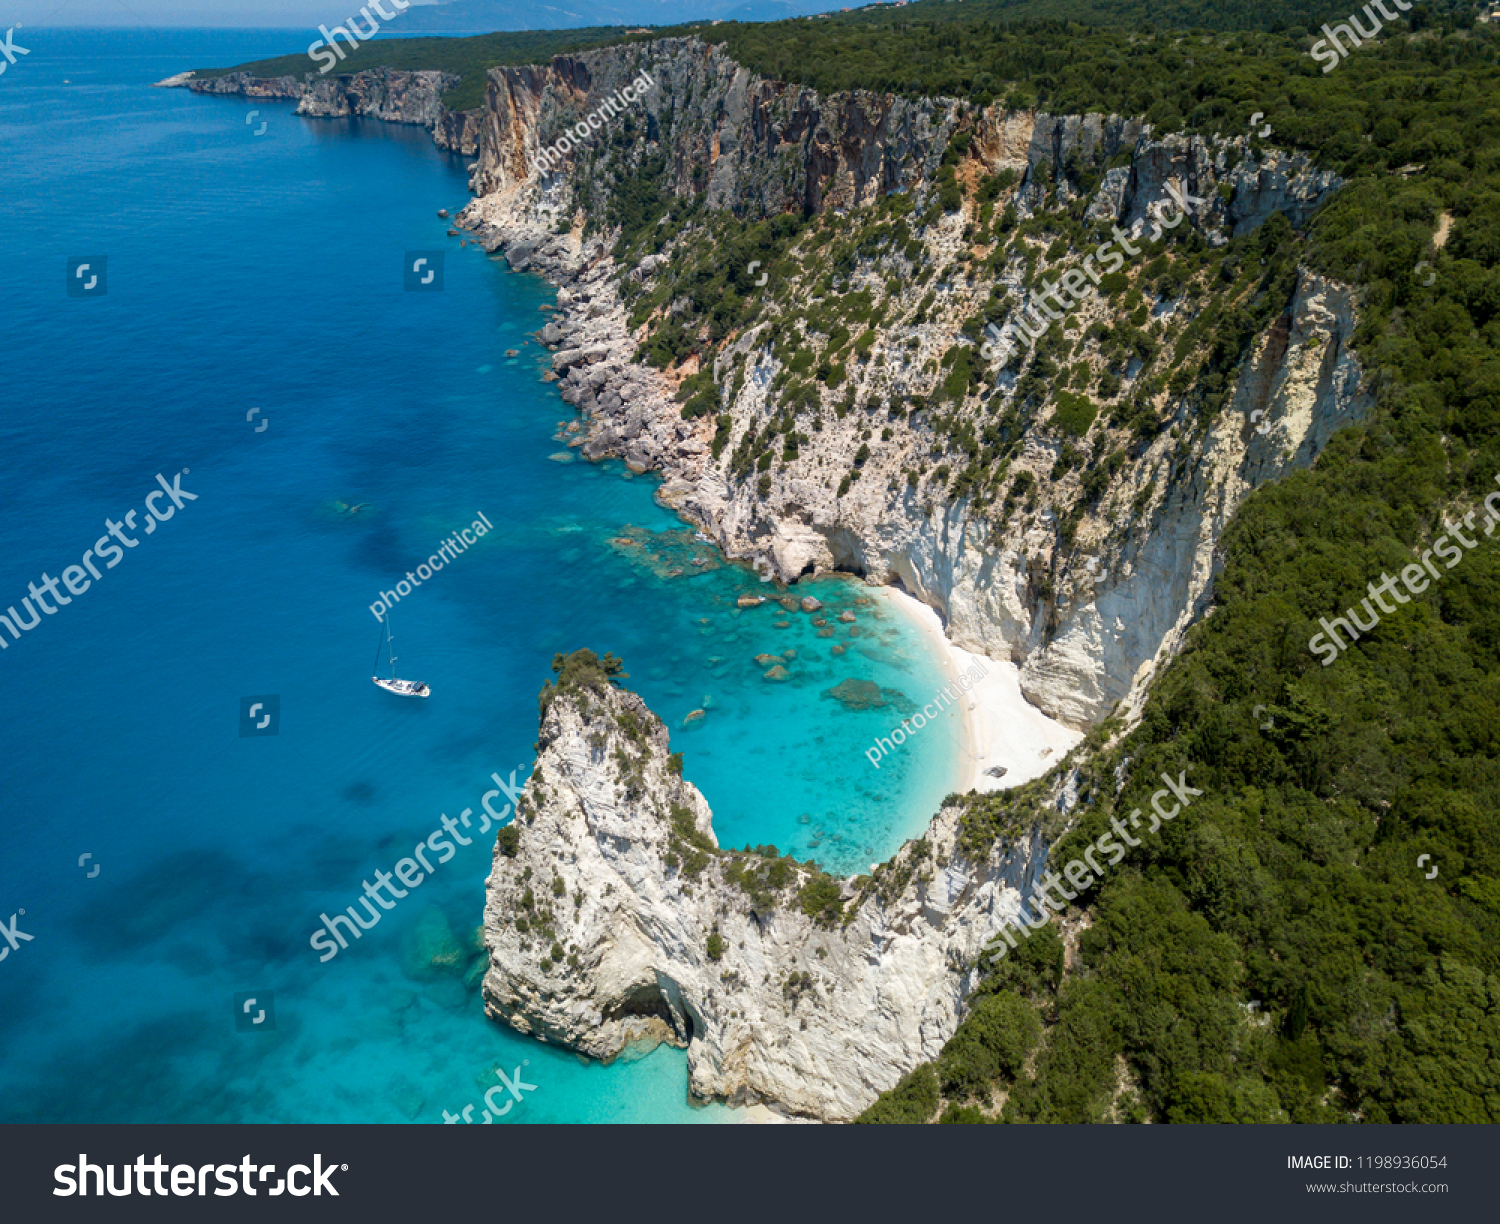 Aerial photo over greek island boat cliffs coastline landscape #1198936054